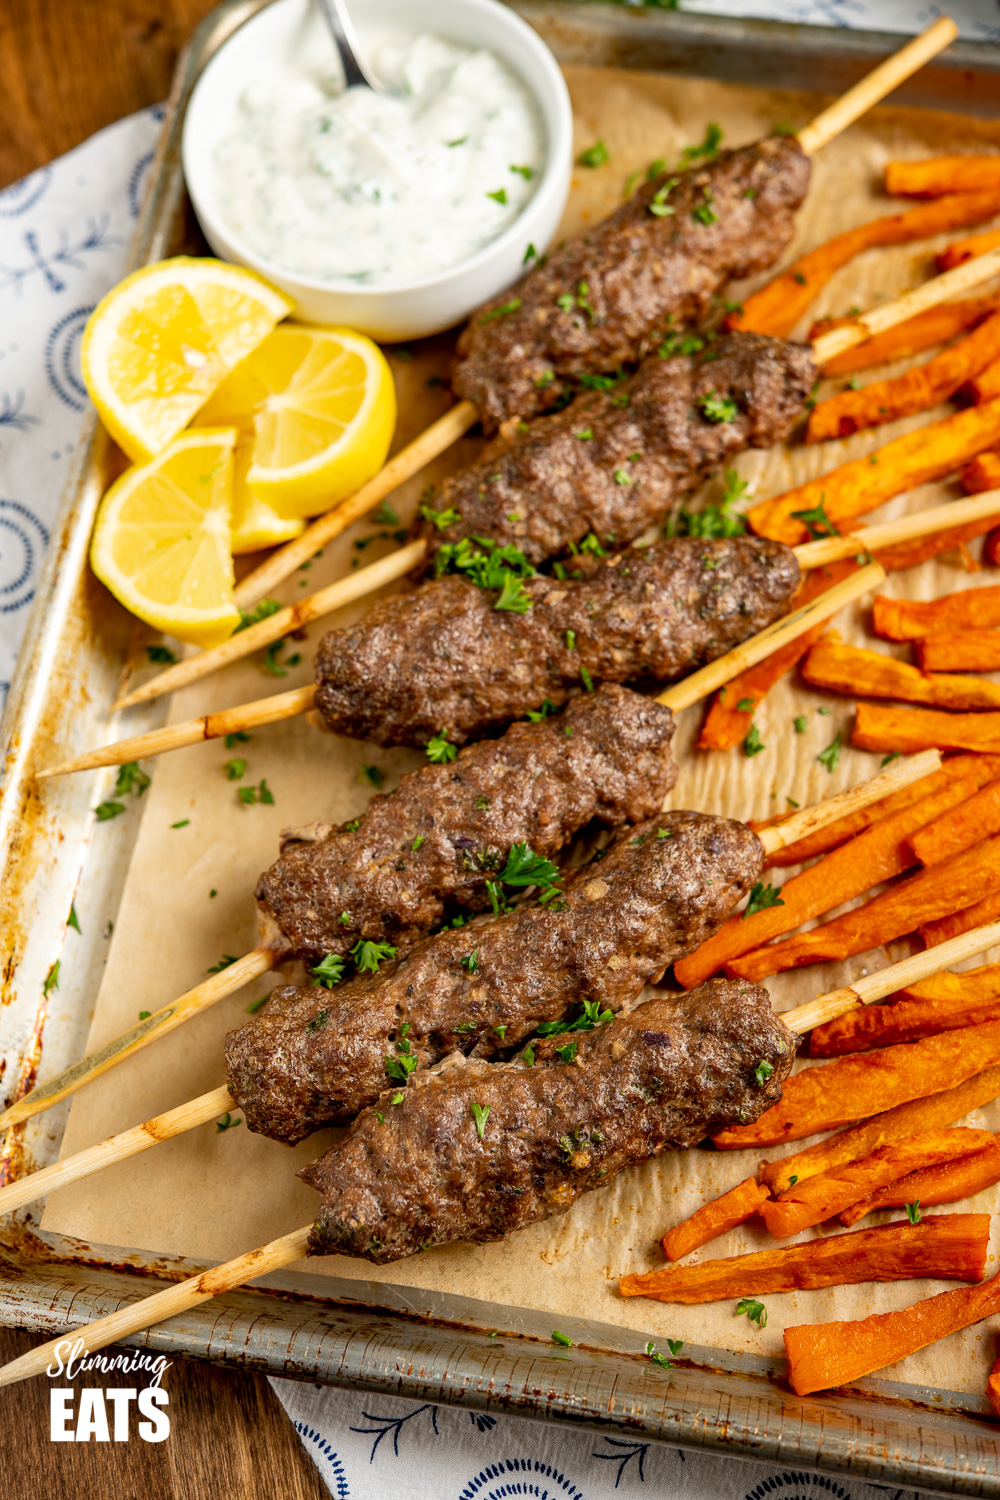 Beef Kofta Tray Bake on baking tray with white bowl of garlic sauce and lemon slices